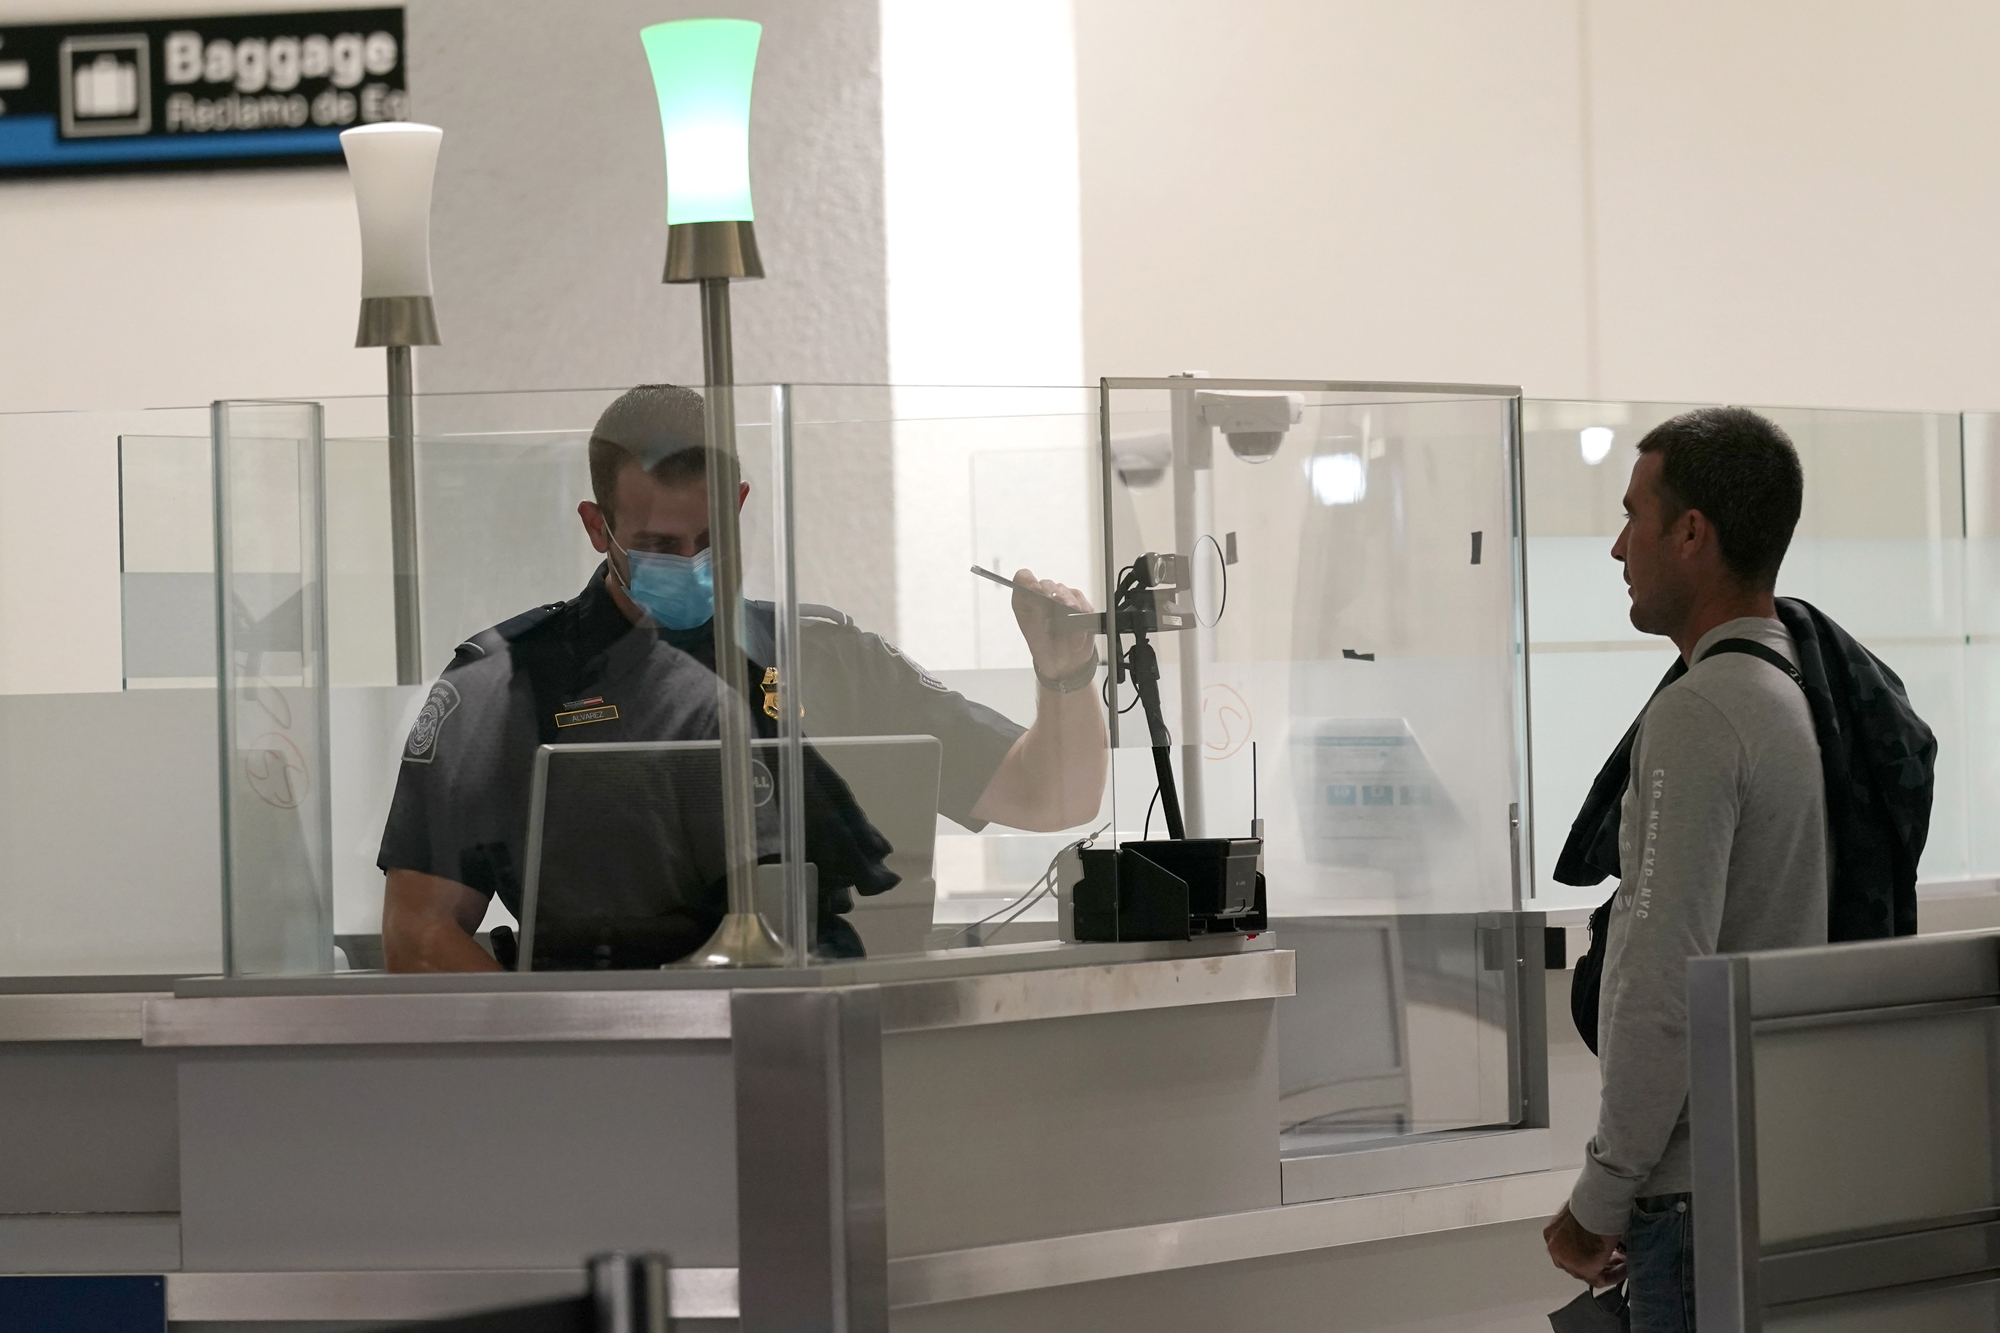 International passengers arrive at Miami international Airport where they are screened by U.S. Customs and Border Protection (CBP) using facial biometrics to automate manual document checks required for admission into the U.S. Friday, Nov. 20, 2020, in Miami. Miami International Airport is the latest airport to provide Simplified Arrival airport-wide. (AP Photo/Lynne Sladky)